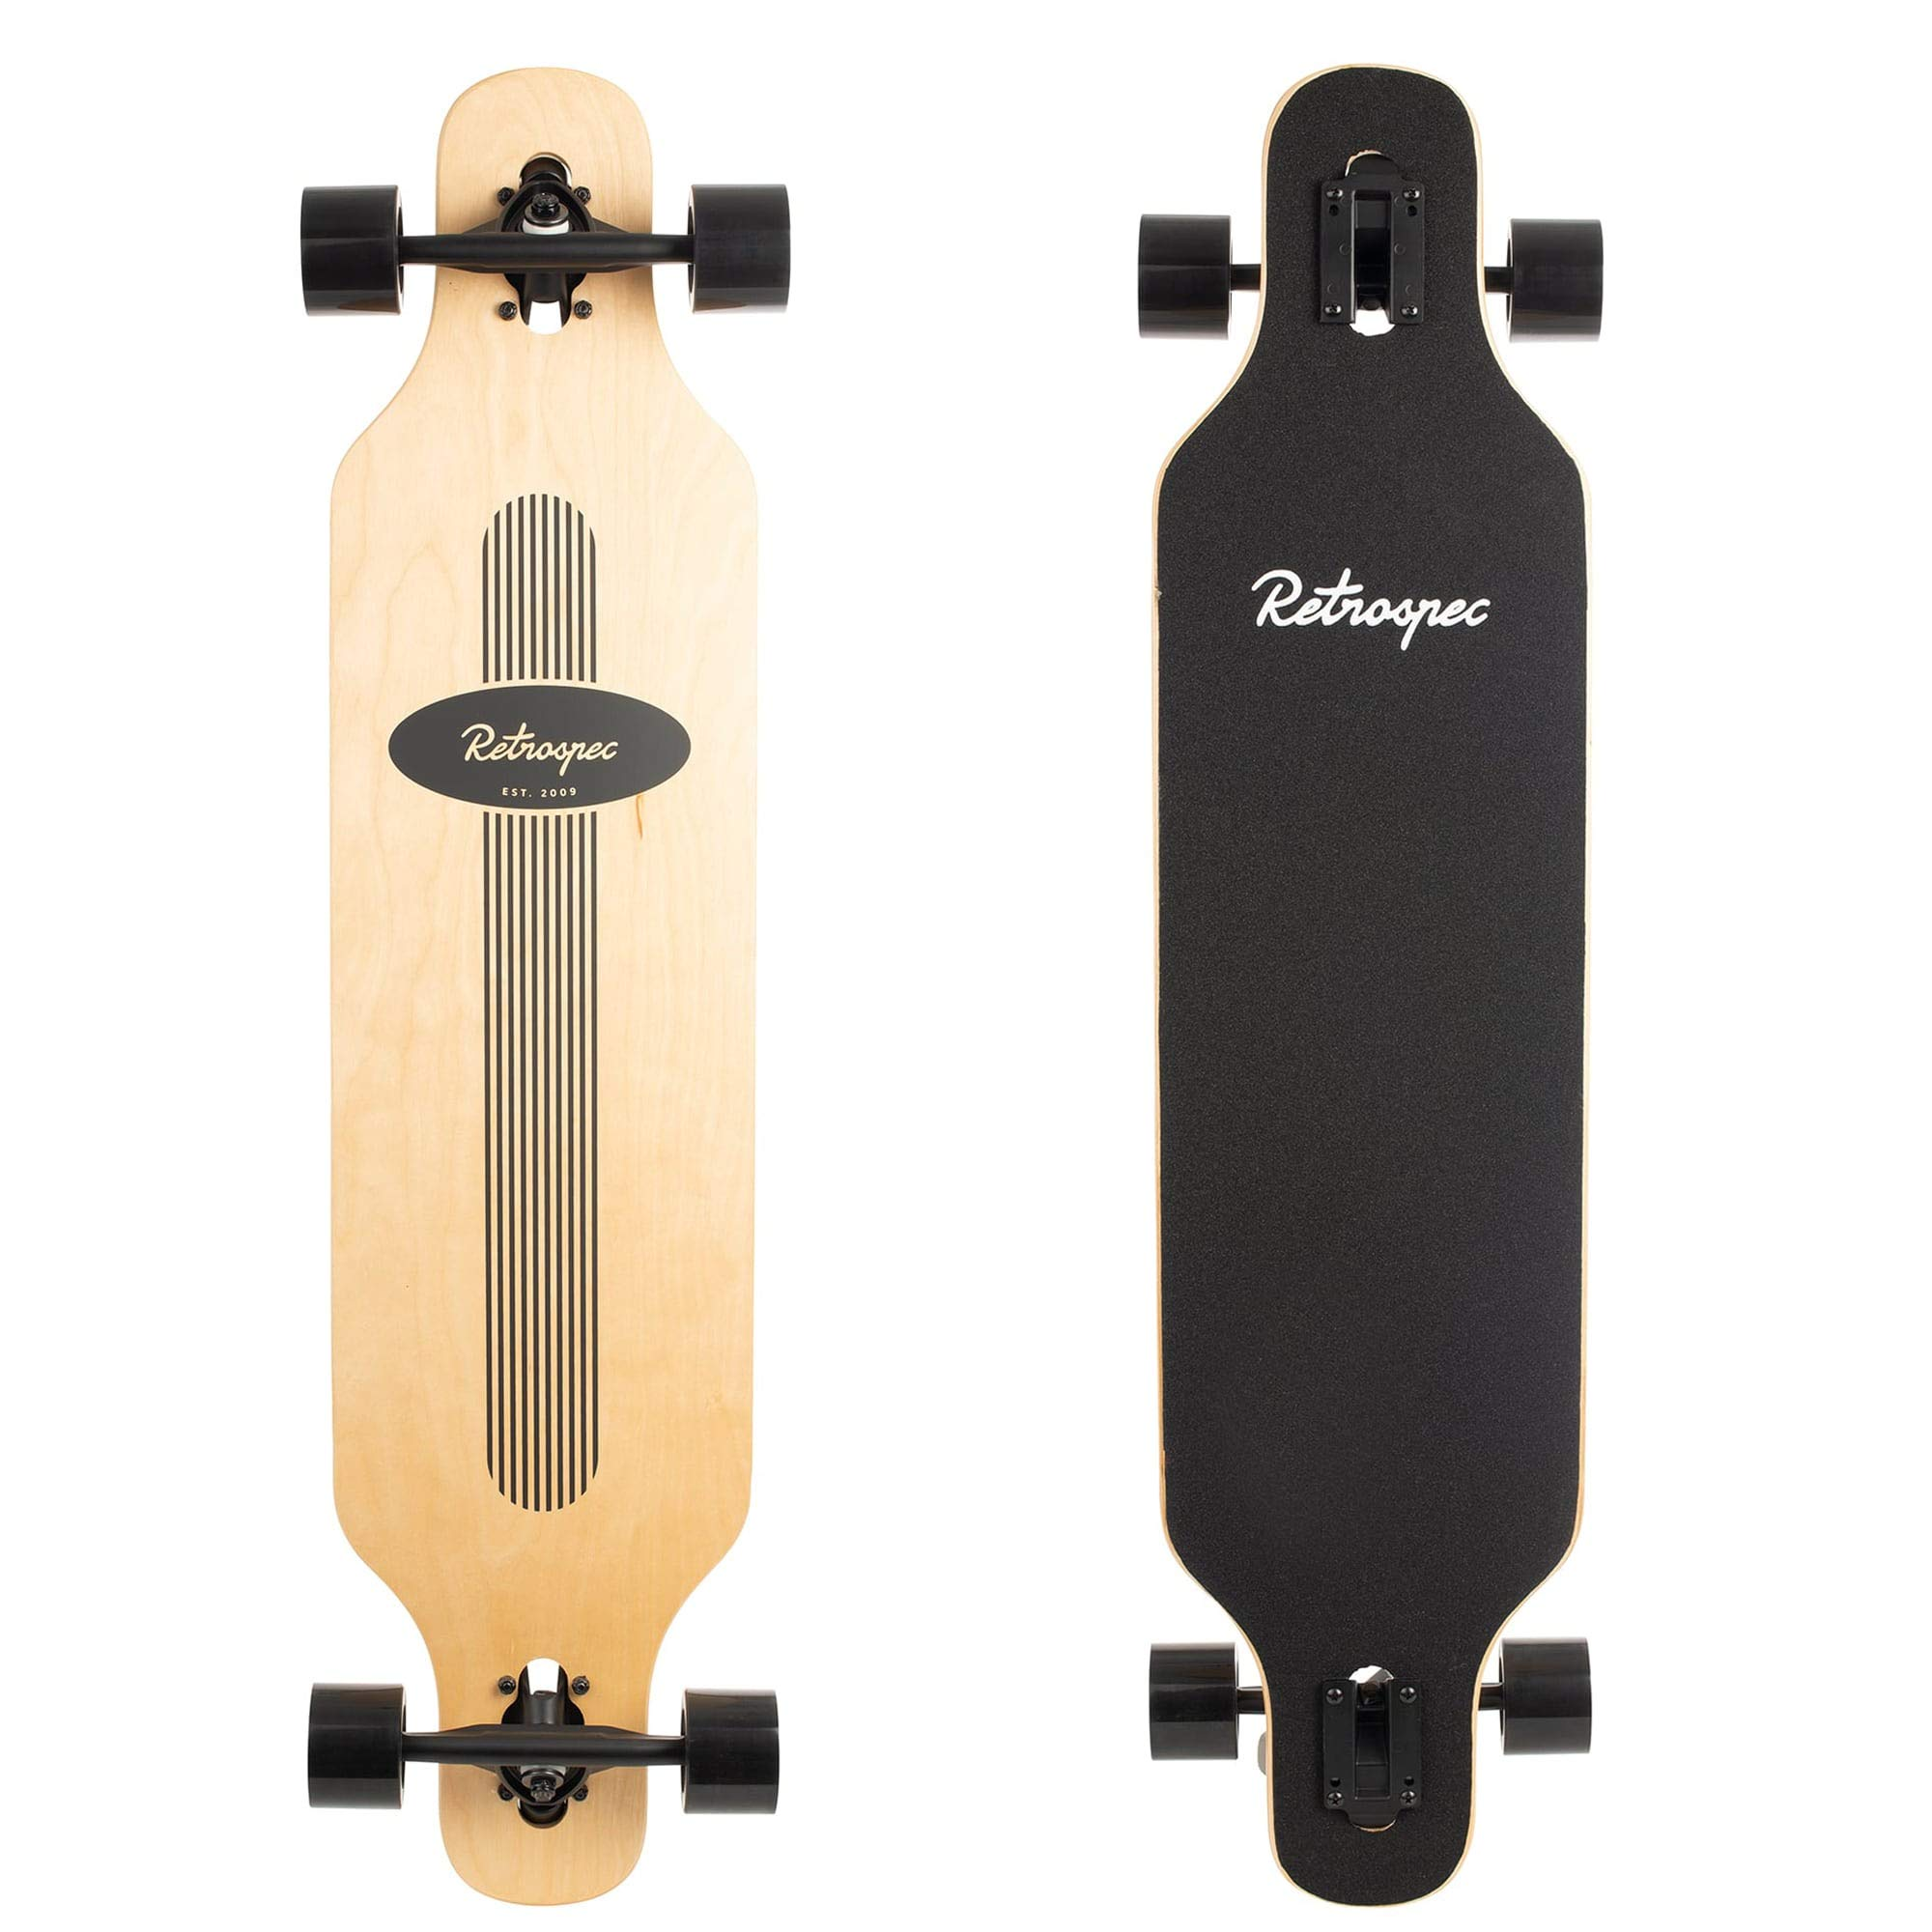 Retrospec Rift Drop-Through Longboard Skateboard Complete, Black Pinstripe, One Size by Retrospec